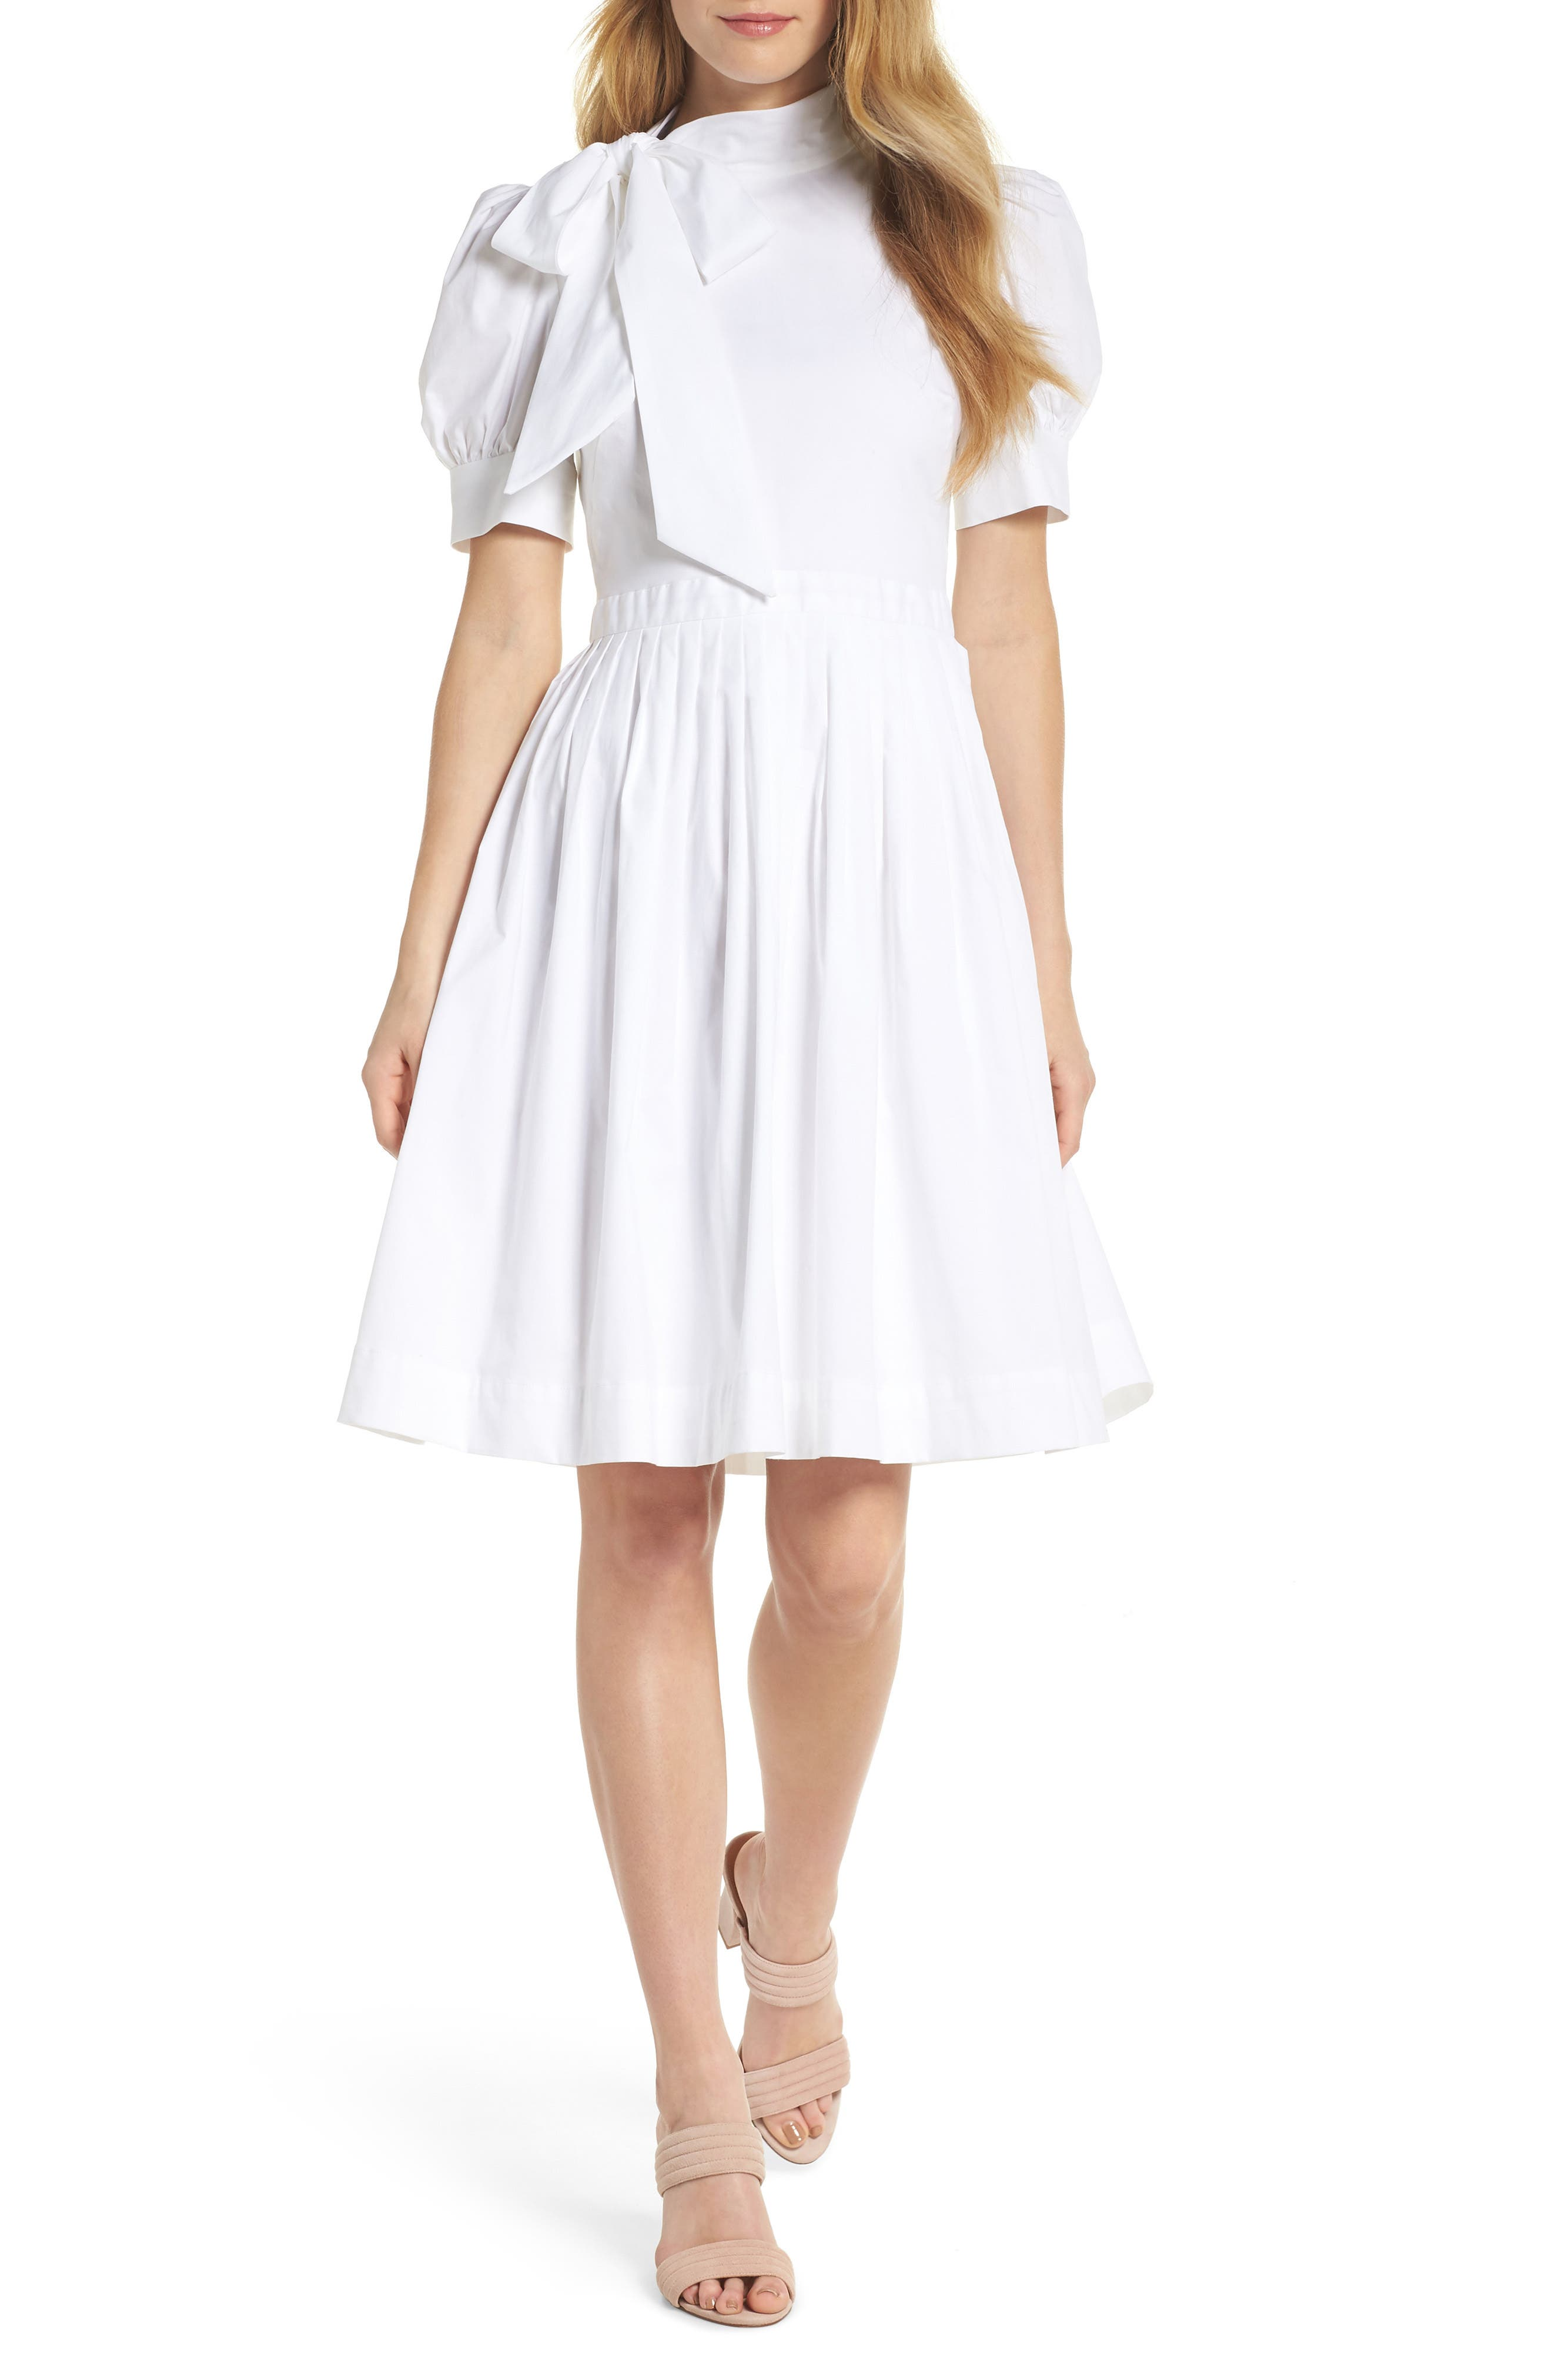 Hanna Puff Sleeve Cotton Poplin Dress,                             Main thumbnail 1, color,                             101